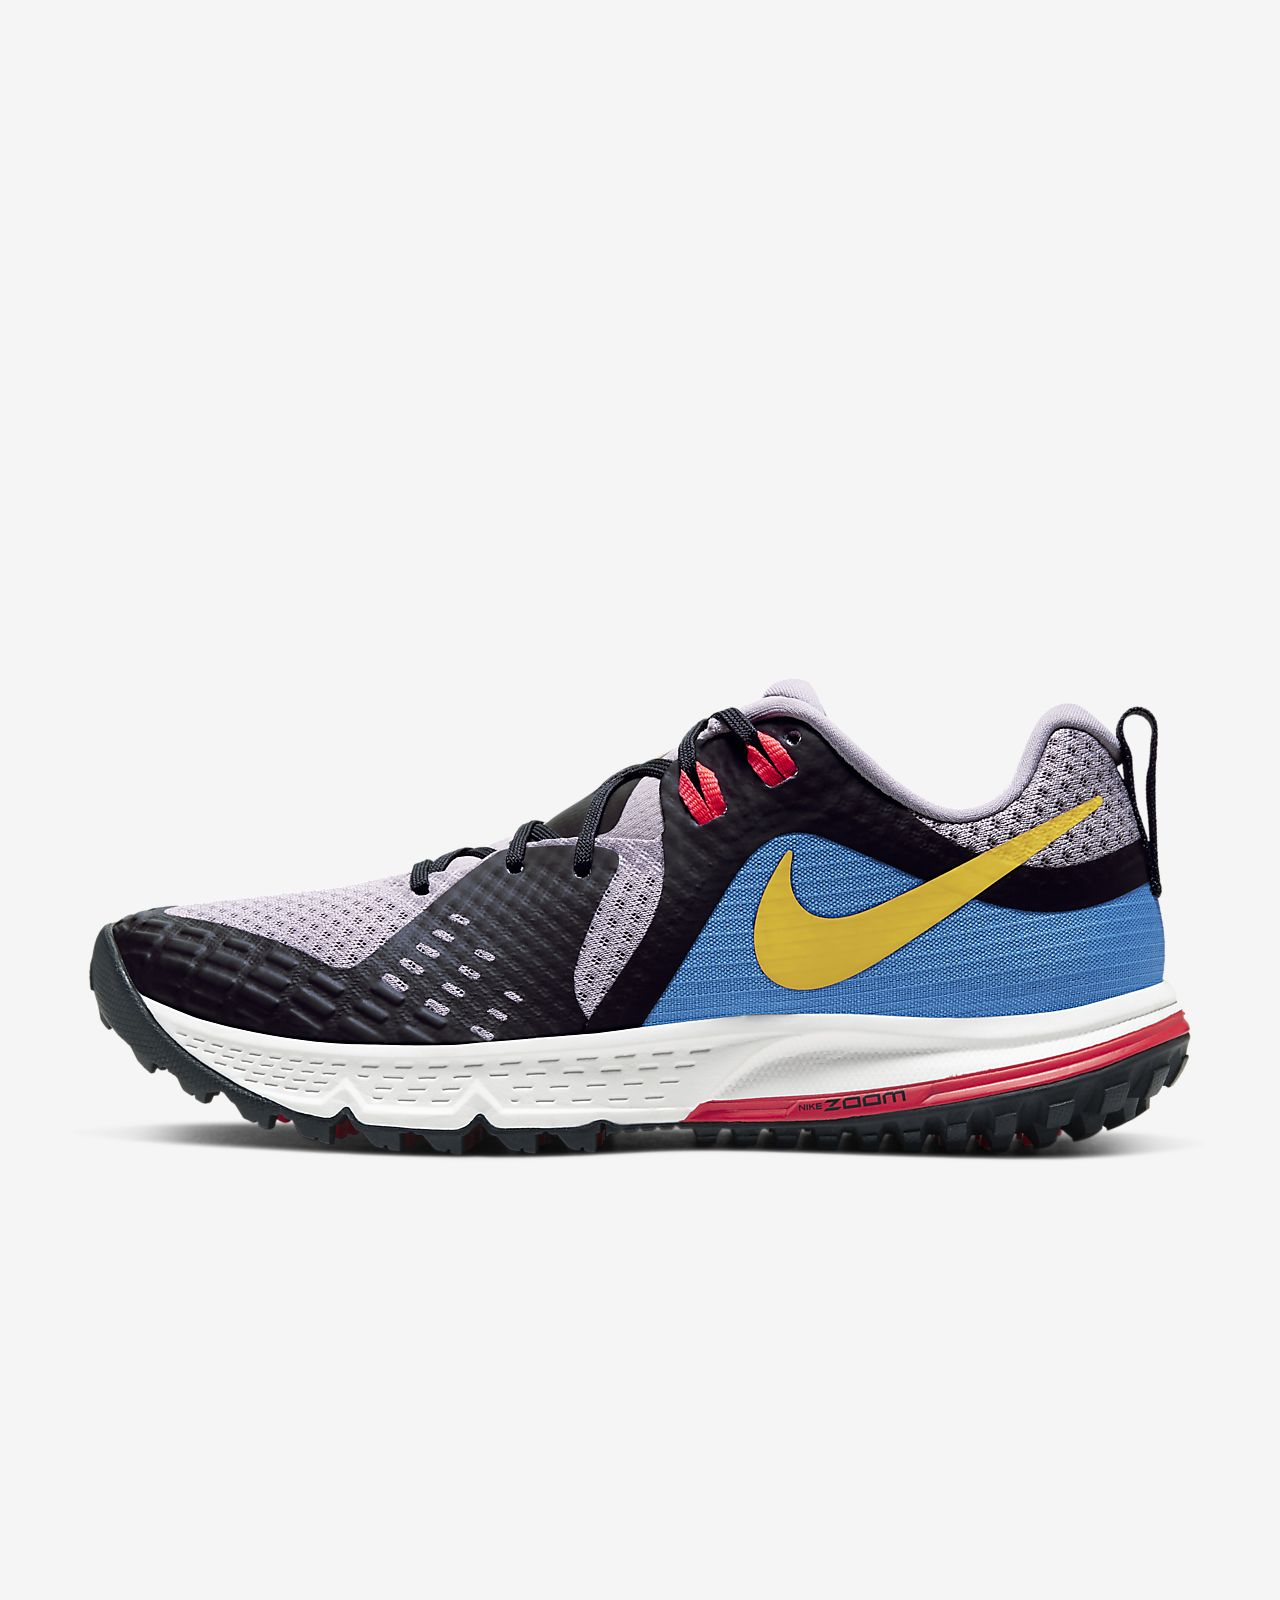 Nike Air Zoom Wildhorse 5 Women's Trail Running Shoe